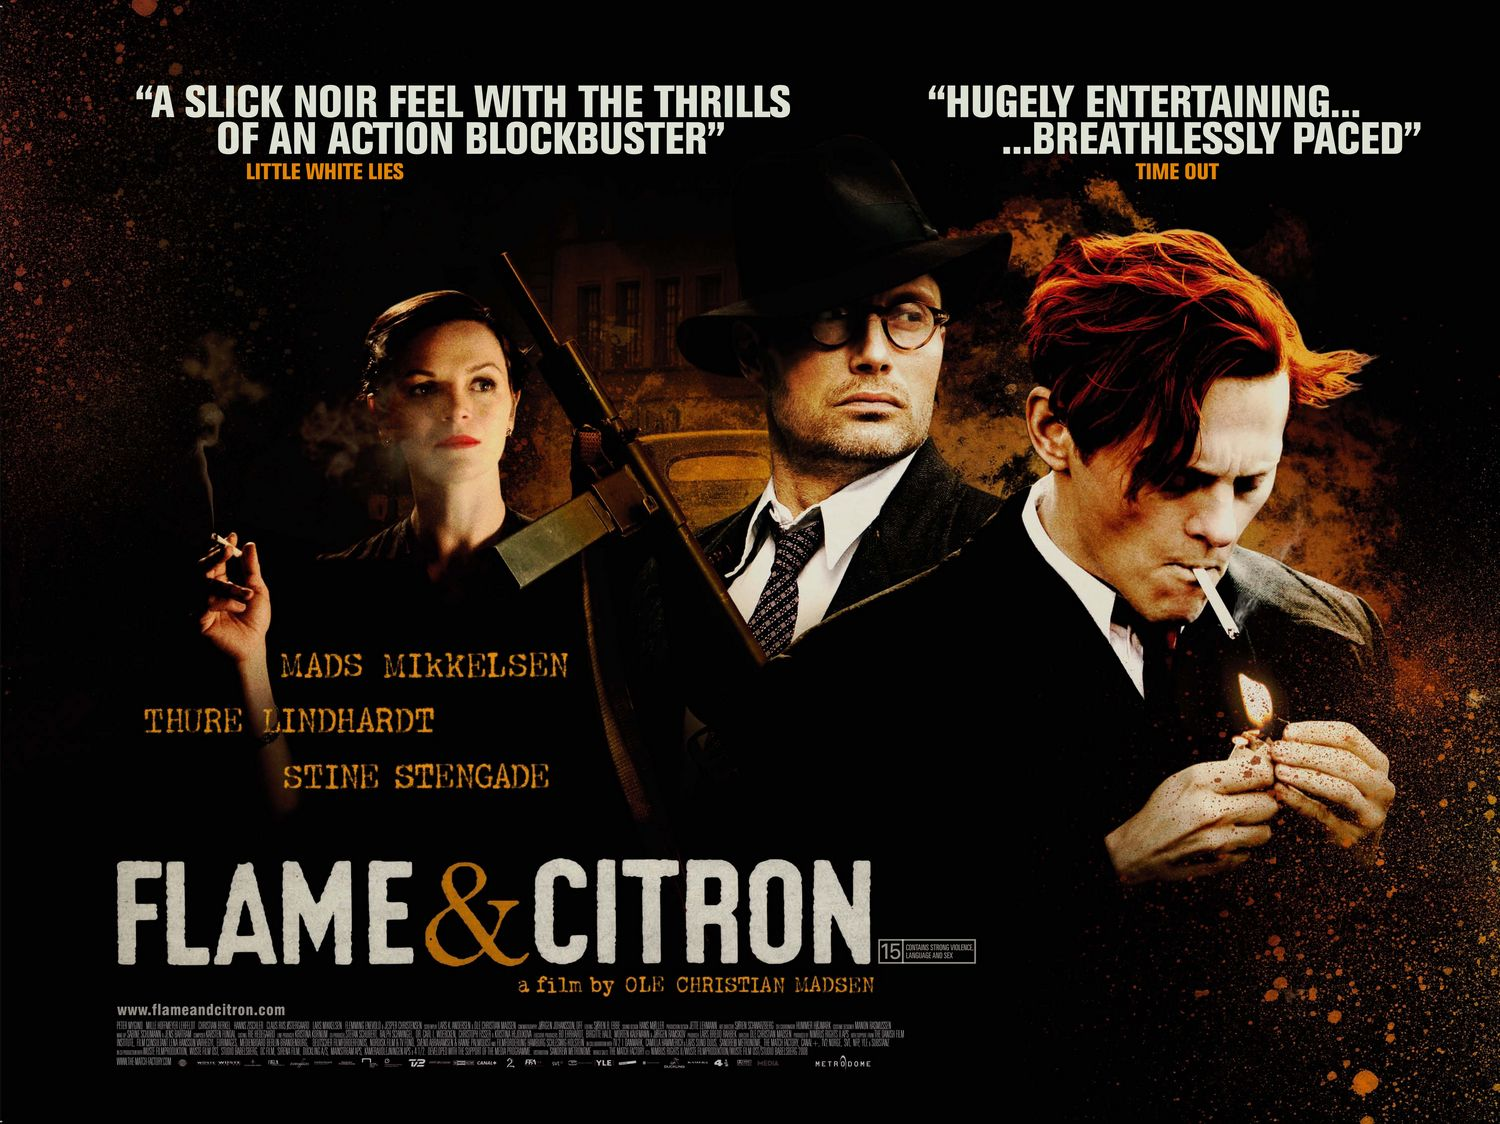 Flame and Citron is one of the Mads Mikkelsen movies that fans should check out if they haven't already.